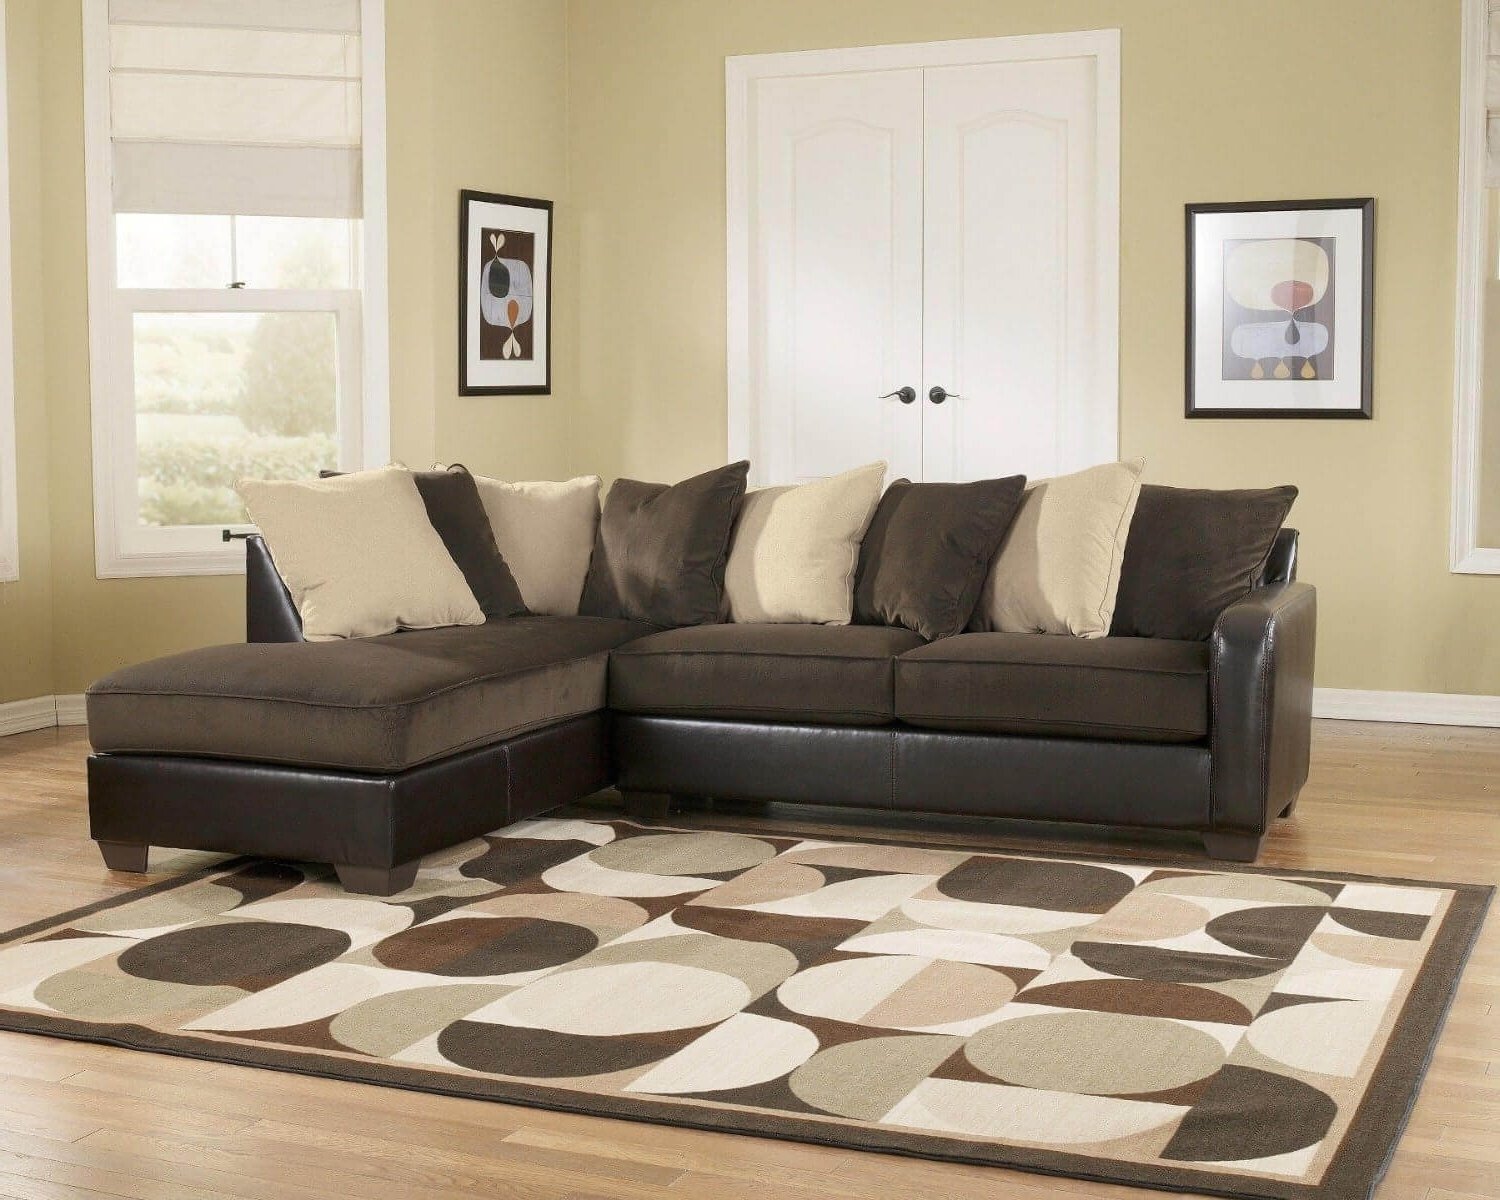 Ashley Sofa Chaises Pertaining To Popular Sectional Sofa Design: Elegant Ashley Furniture Sectional Sofas (View 2 of 15)